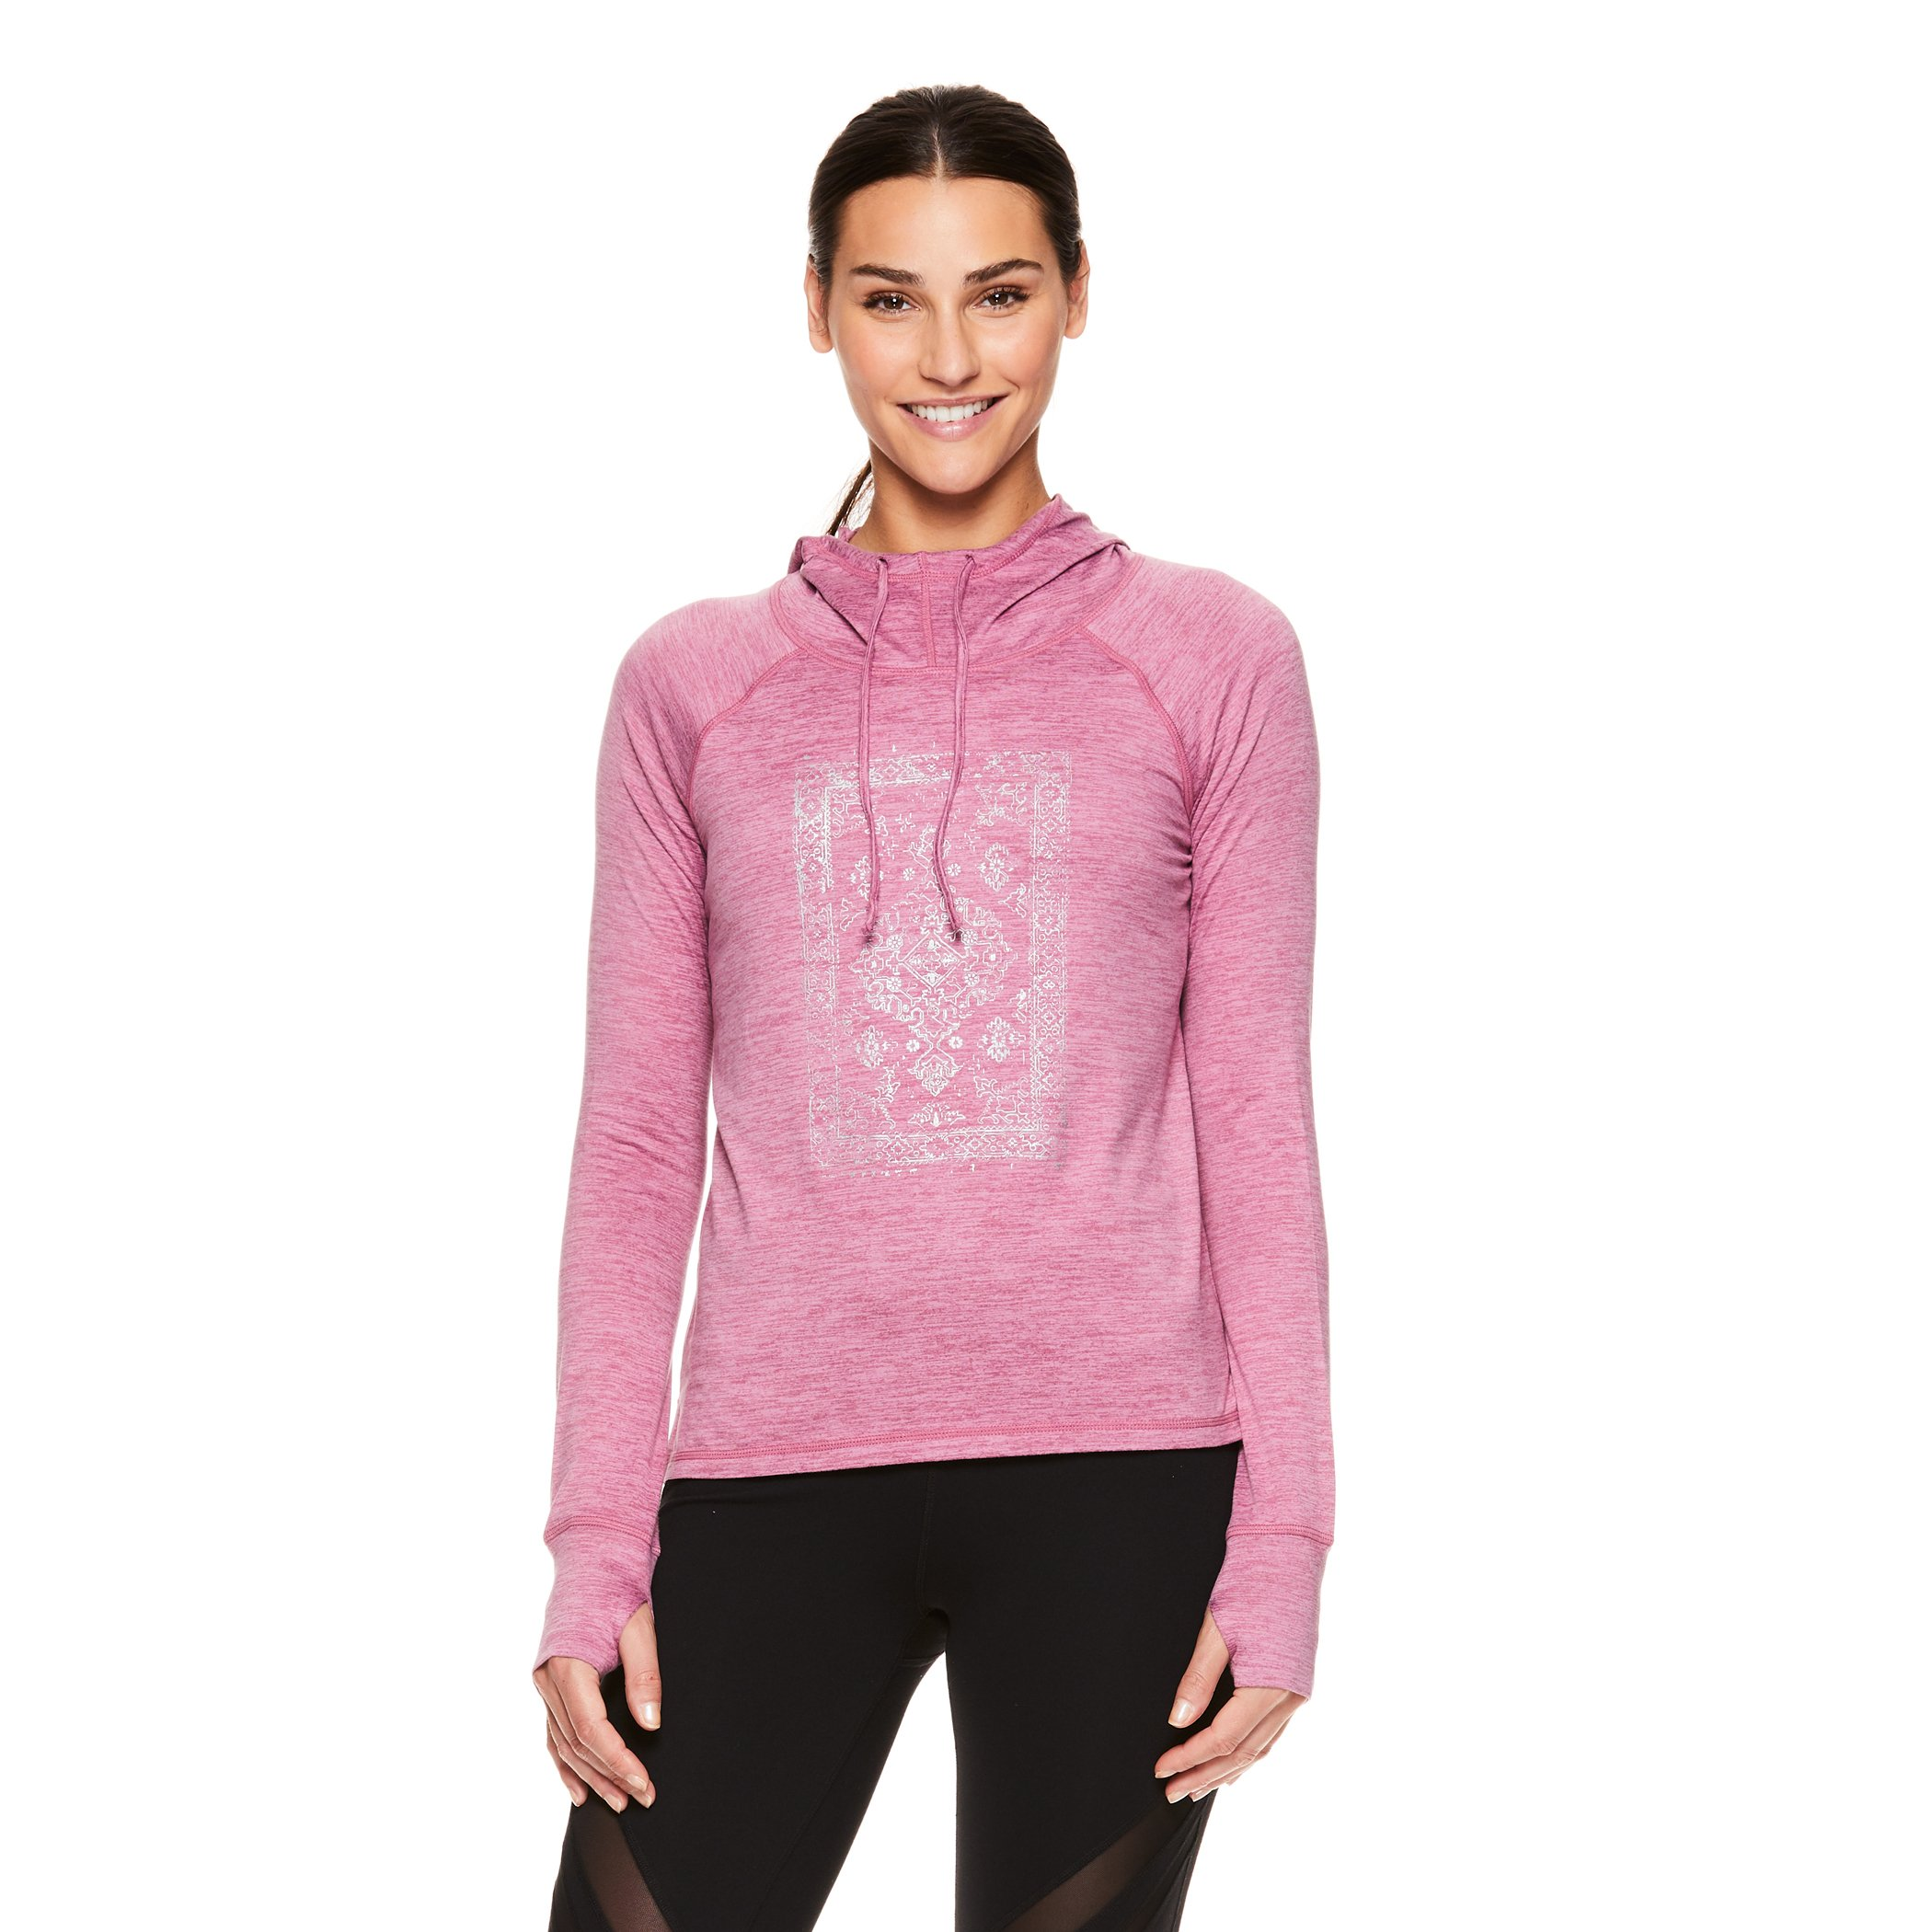 Gaiam Women's Graphic Long Sleeve Hoodie - Hooded Activewear Workout & Yoga Sweater - Maya Mellow Mauve Heather, X-Small by Gaiam